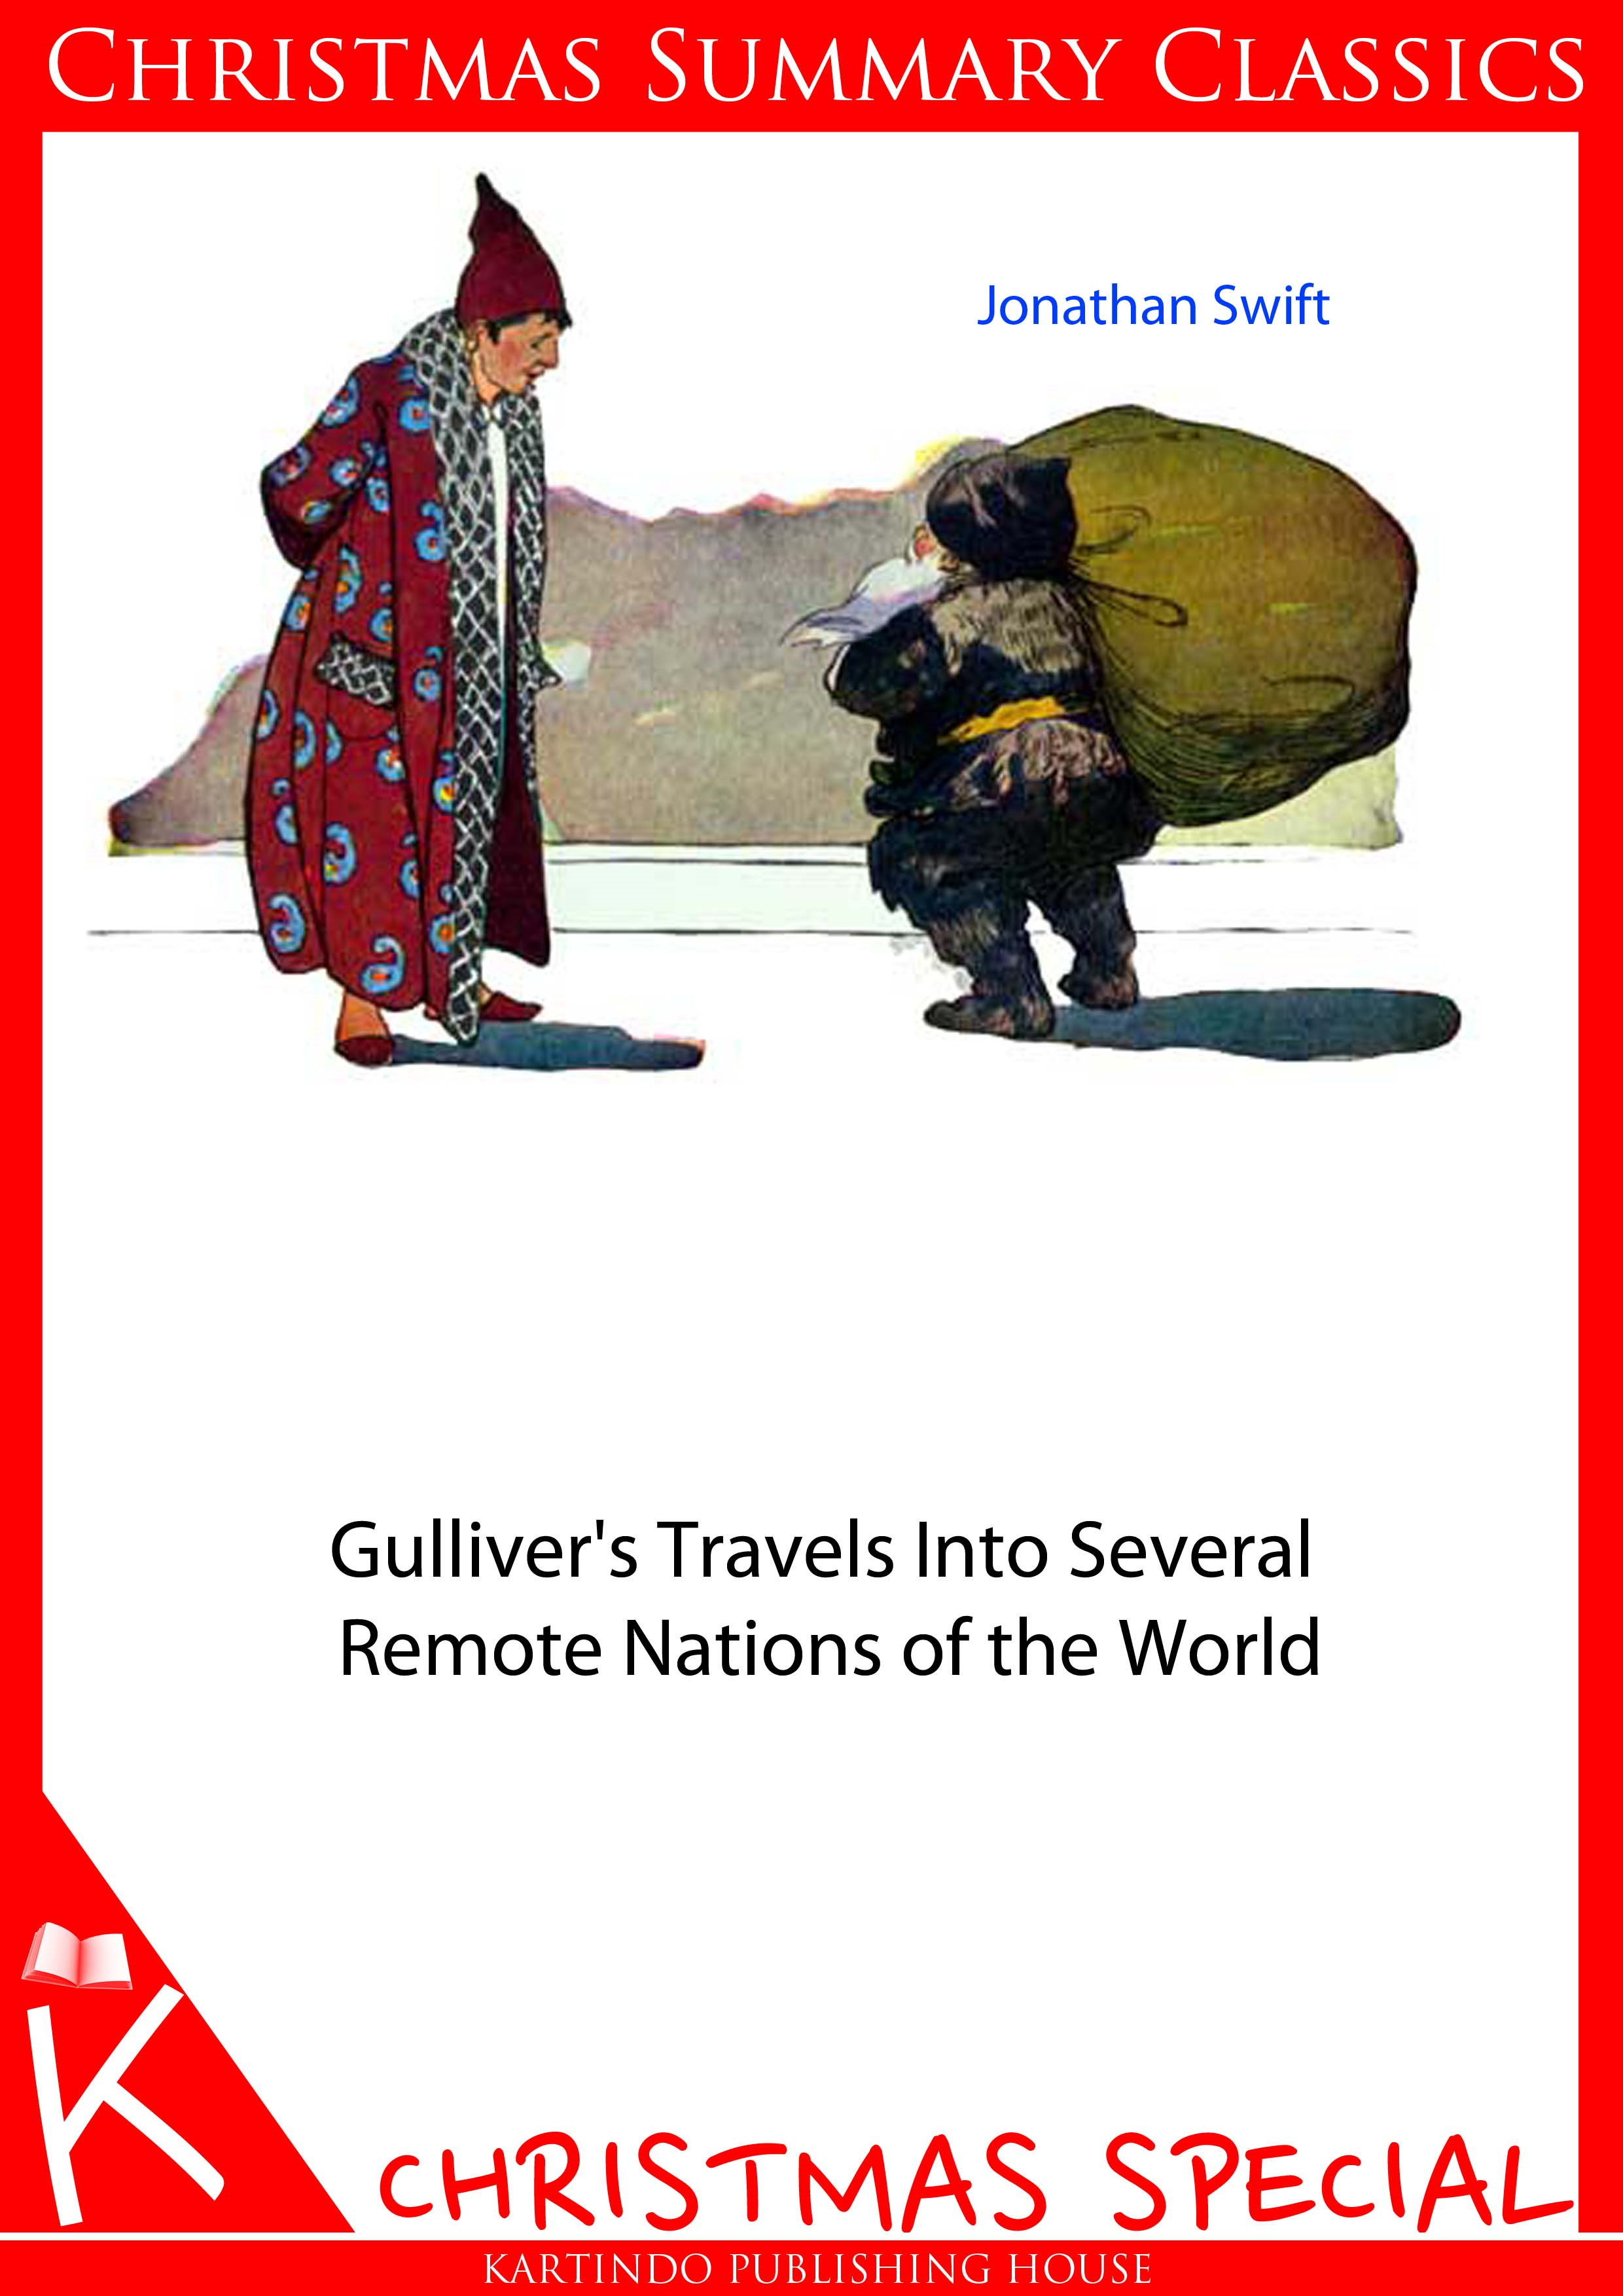 Jonathan Swift - Gulliver's Travels Into Several Remote Nations of the World  [Christmas Summary Classics]